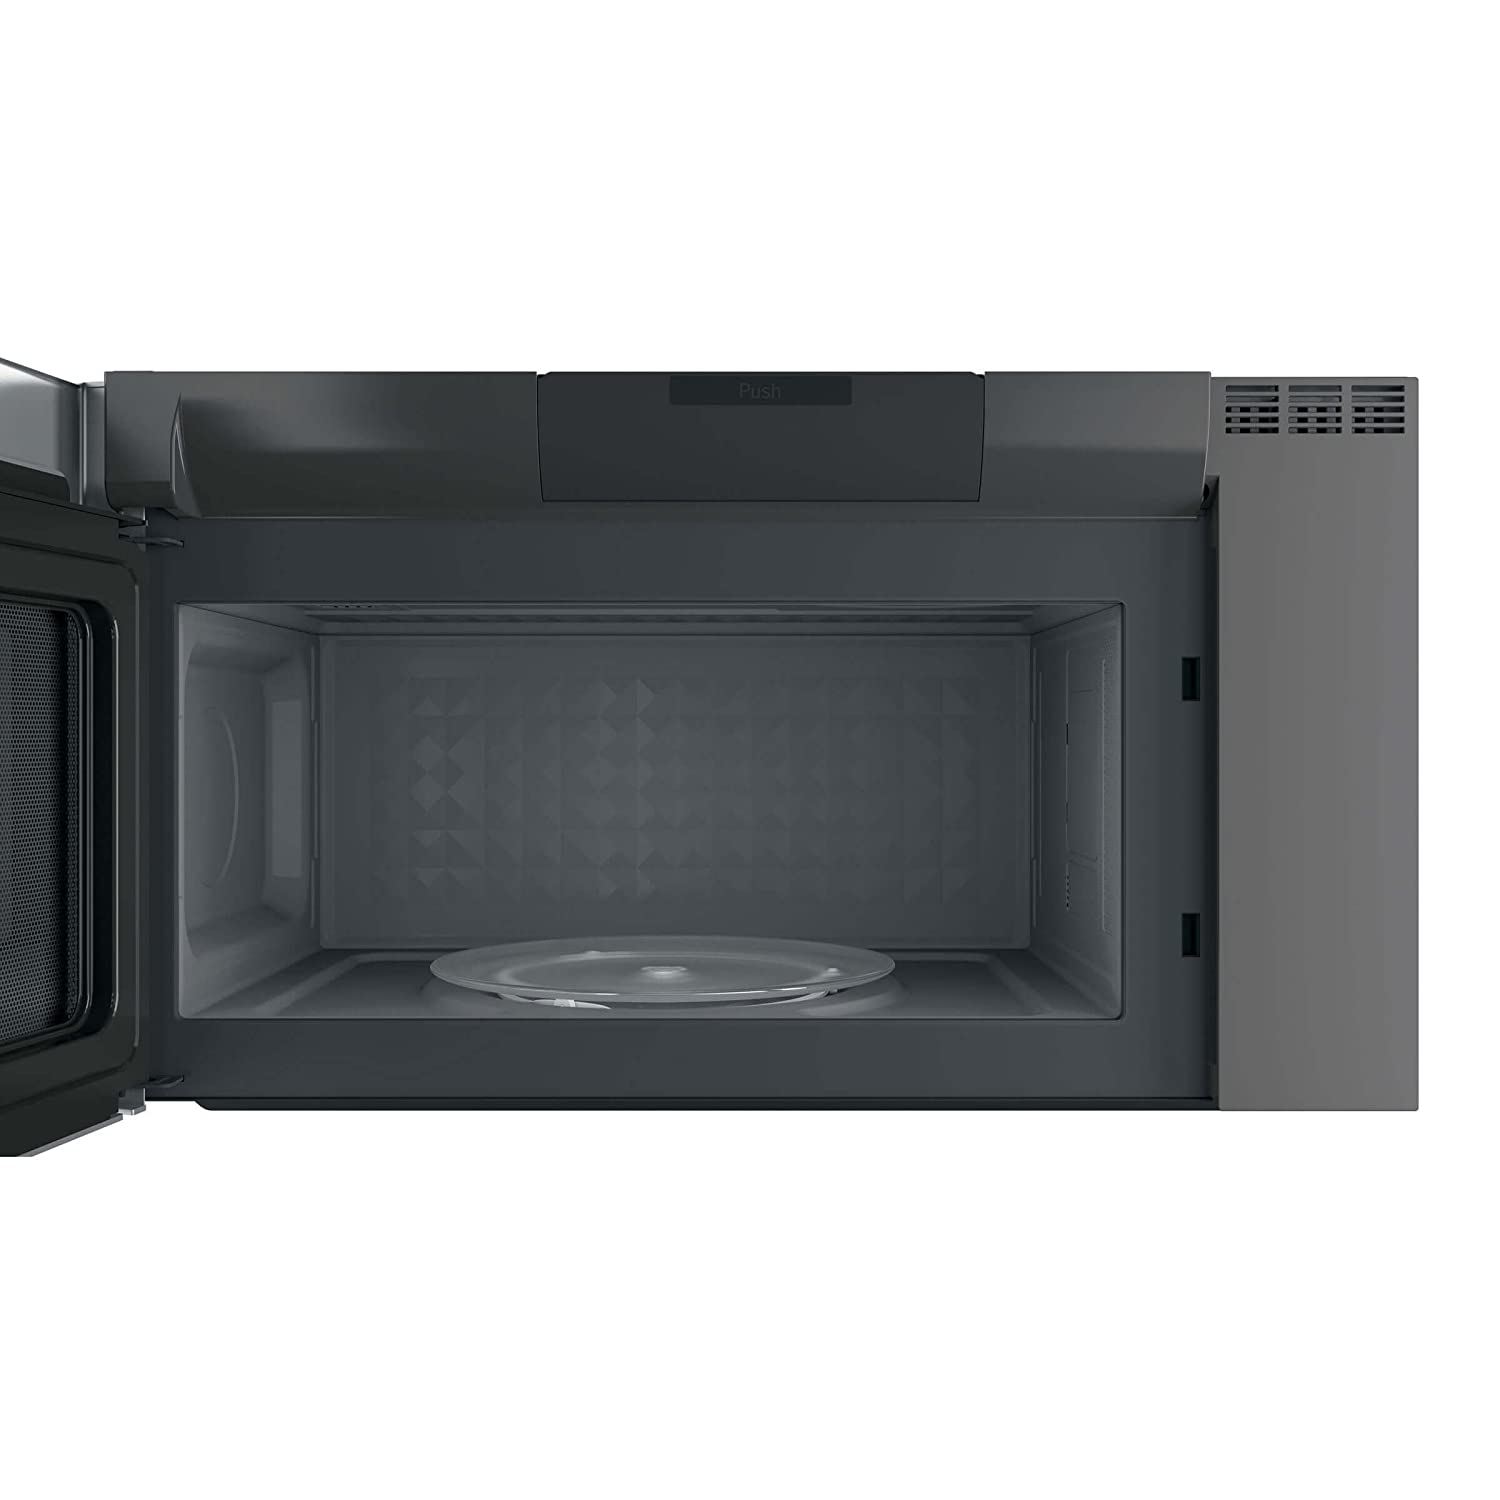 GE PVM9005SJSS Profile 2.1 Cu. Ft. Stainless Steel Over-the-Range Microwave Review